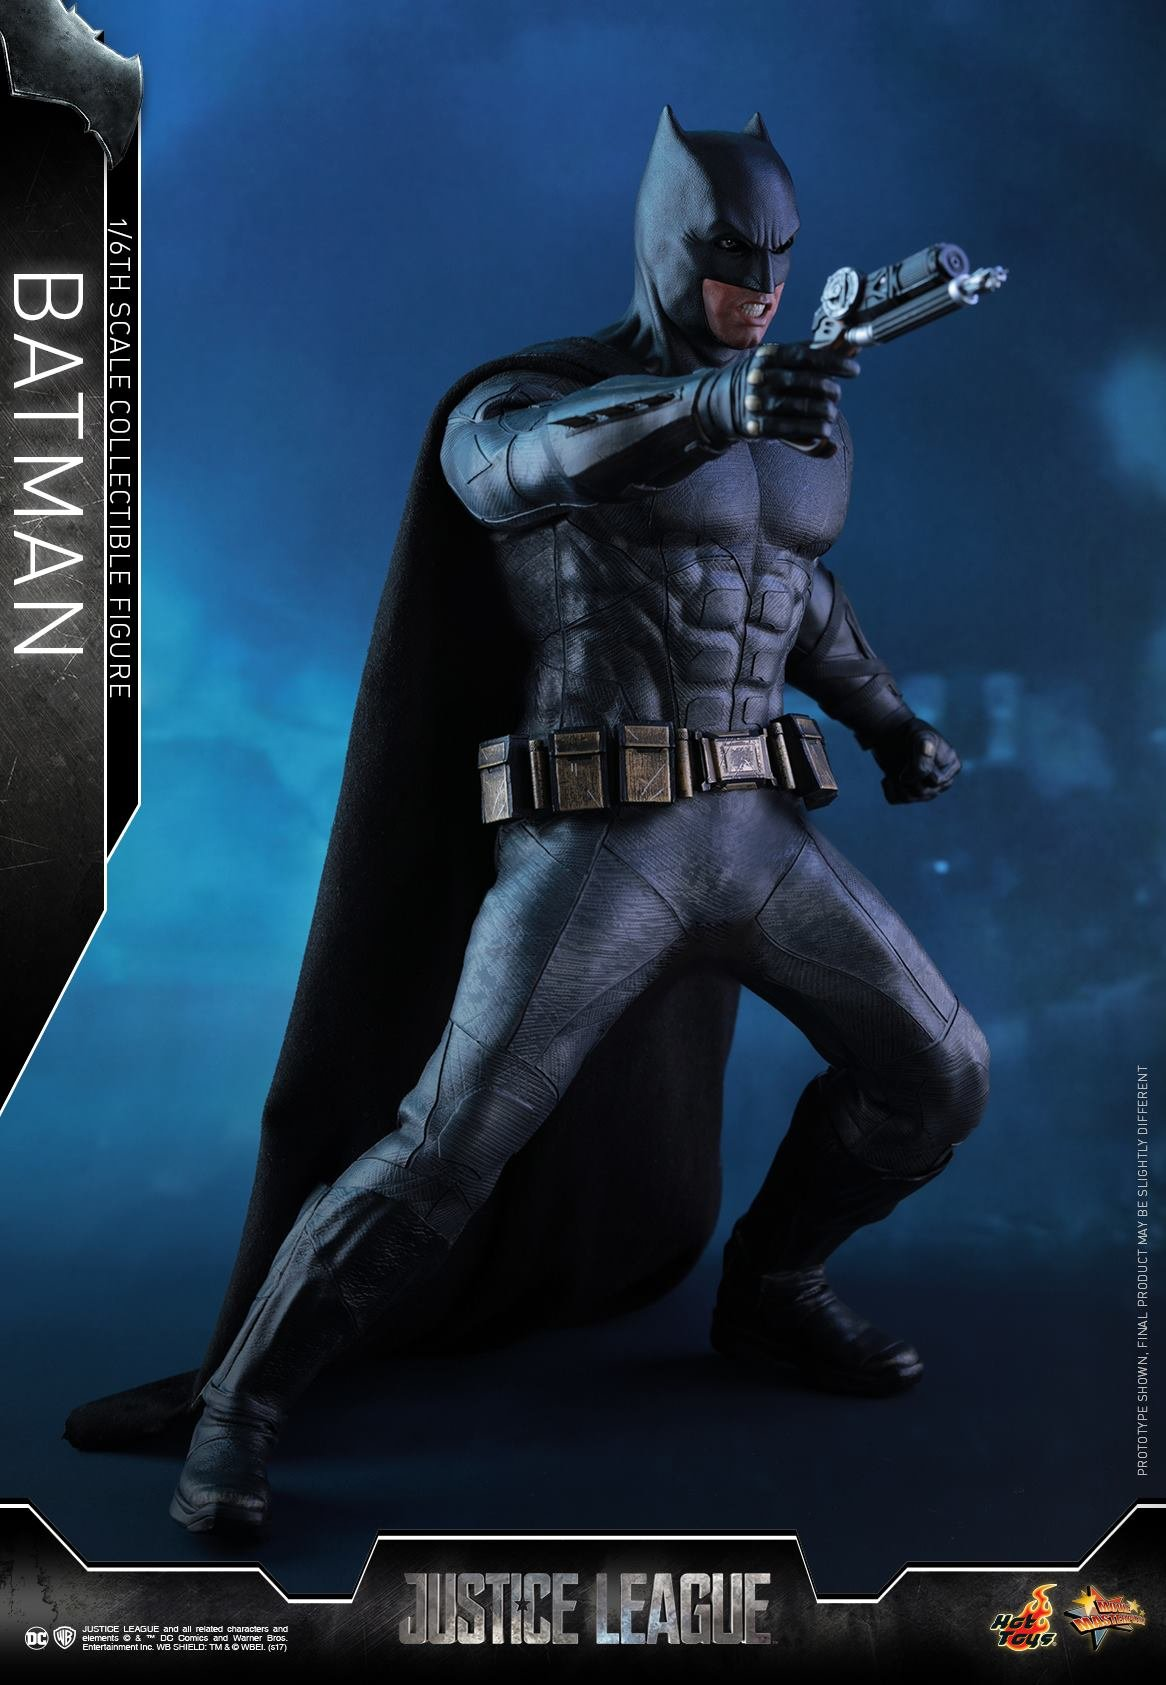 Hot-Toys-Batman-Justice-League-002.jpg